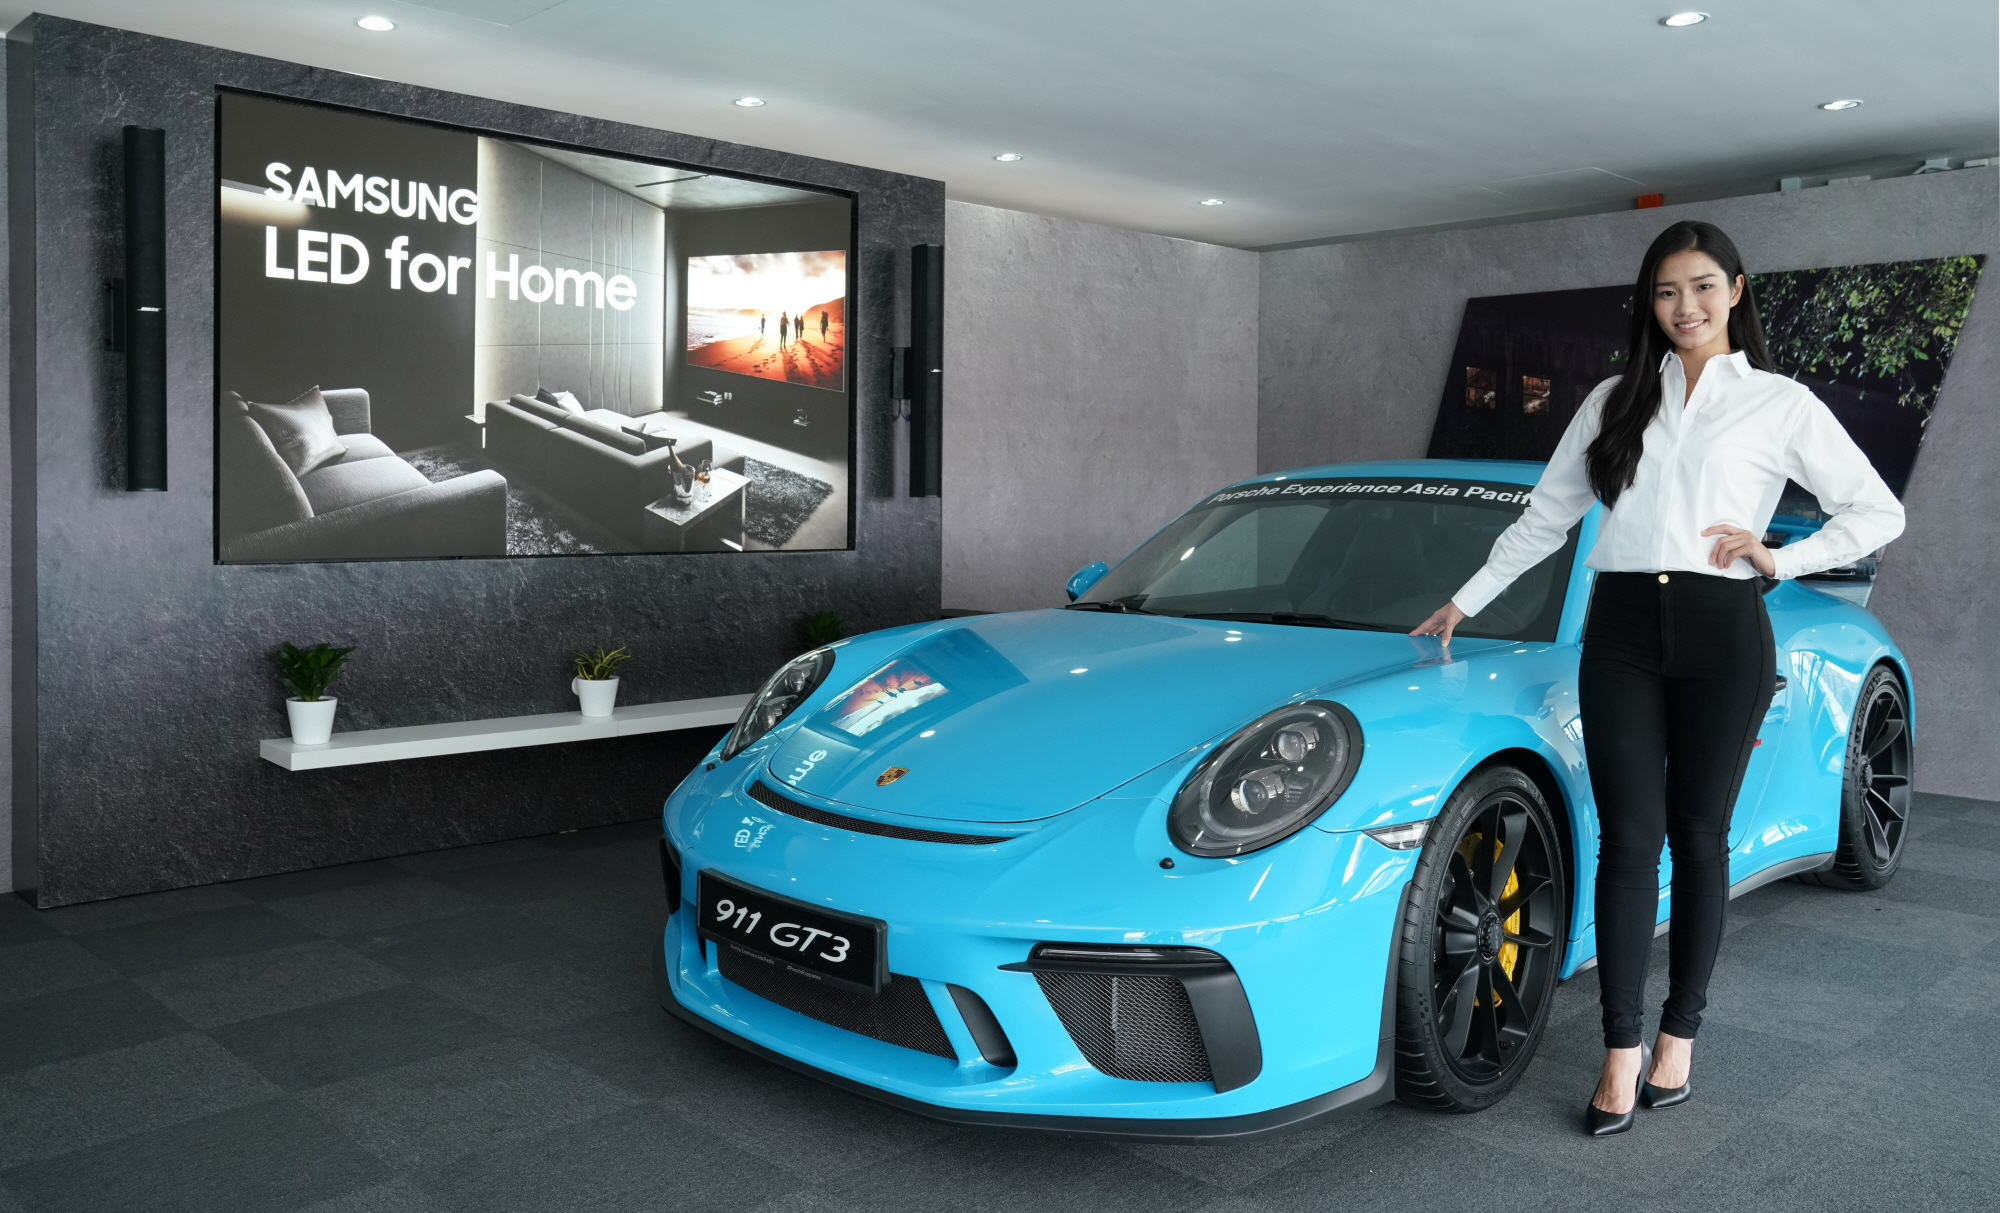 Samsung Collaborates with Porsche Image